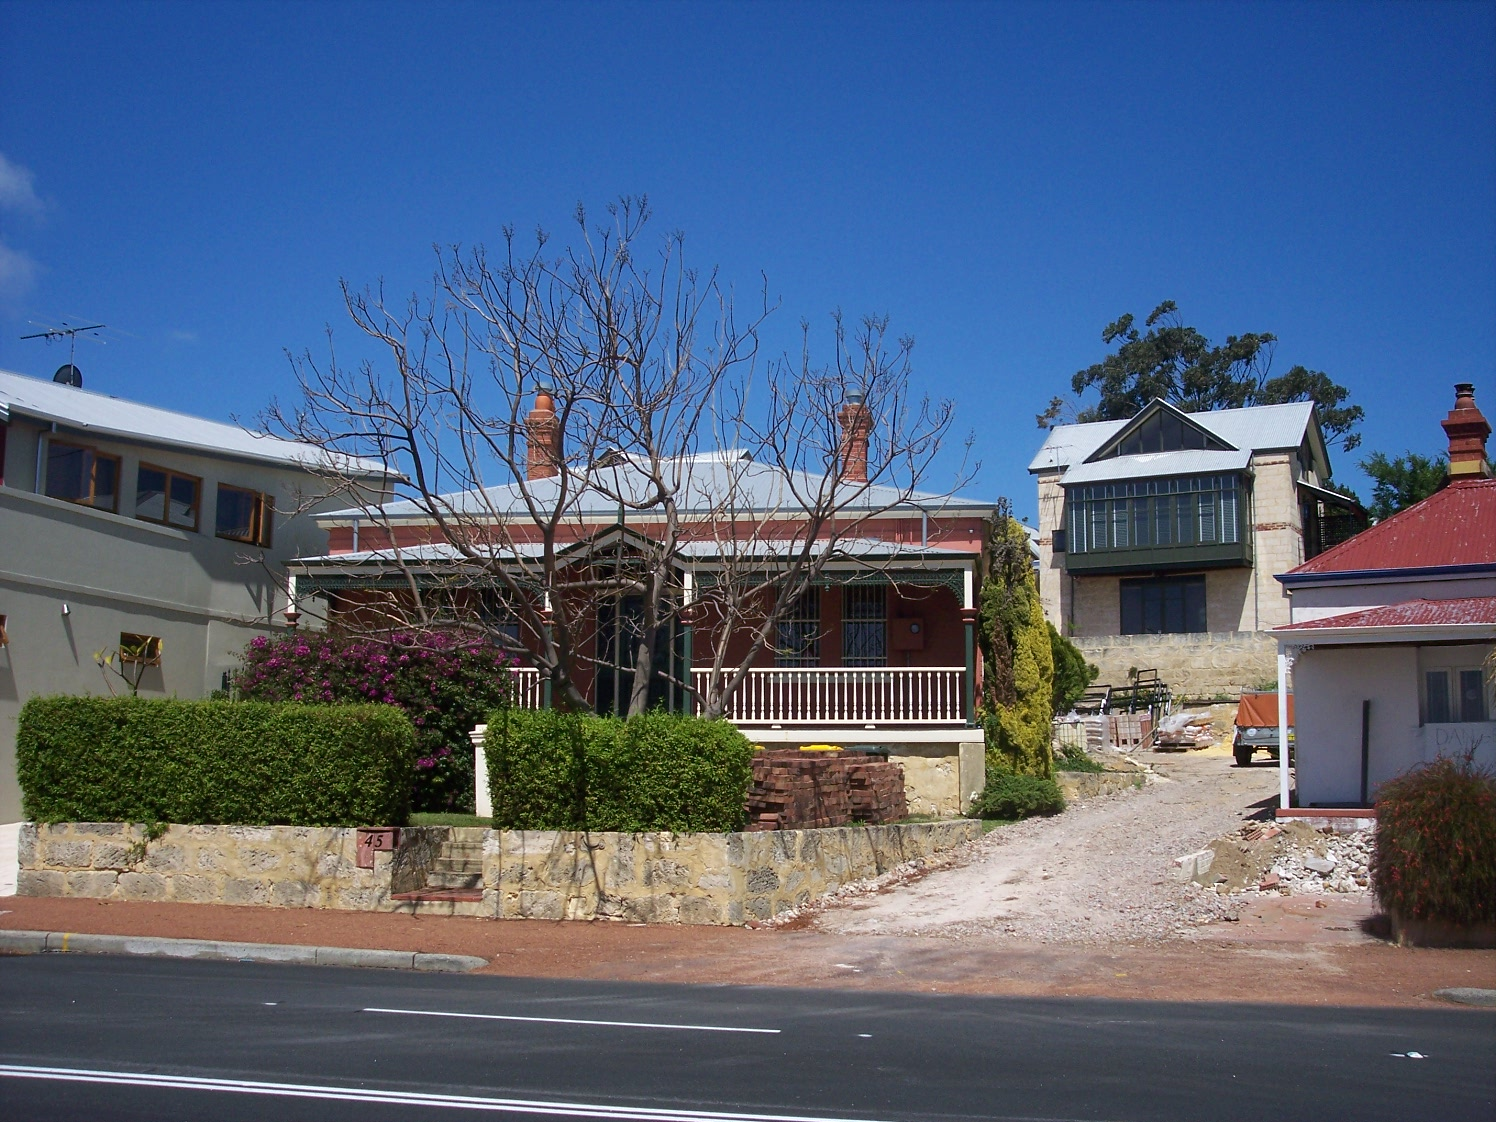 10-10-06 View S 45 Canning Highway.jpg